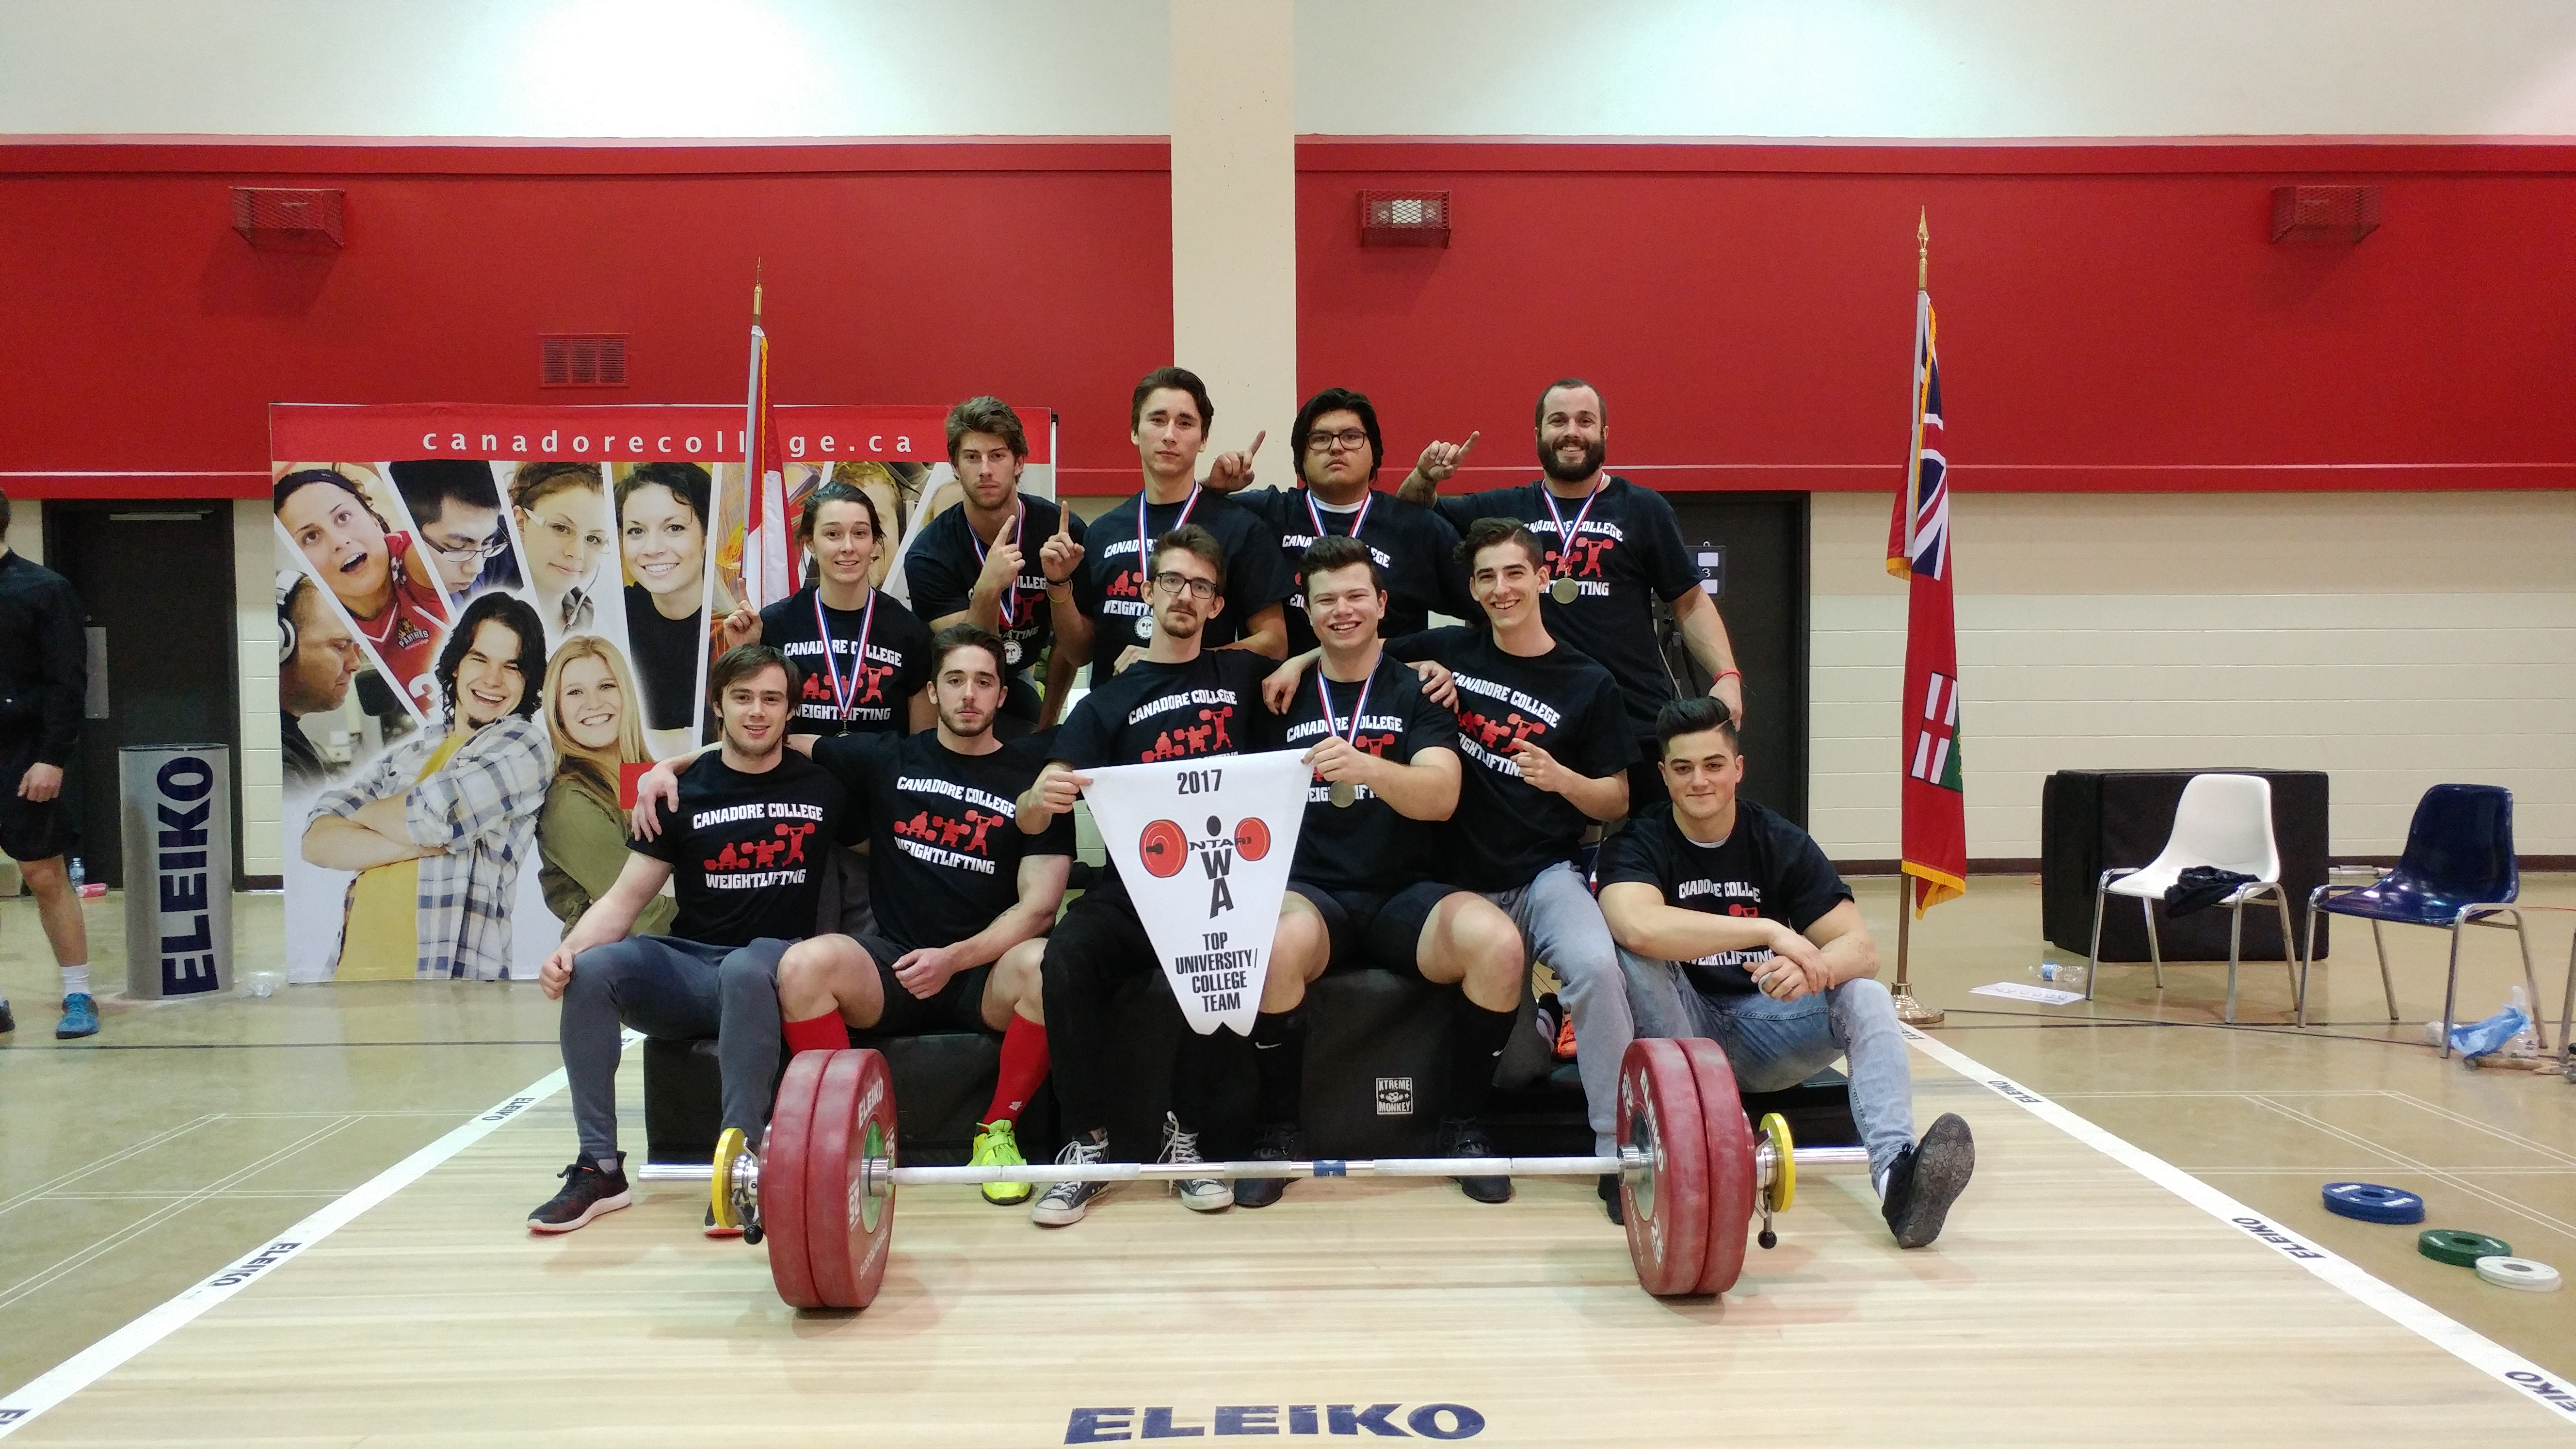 Group of weightlifting students